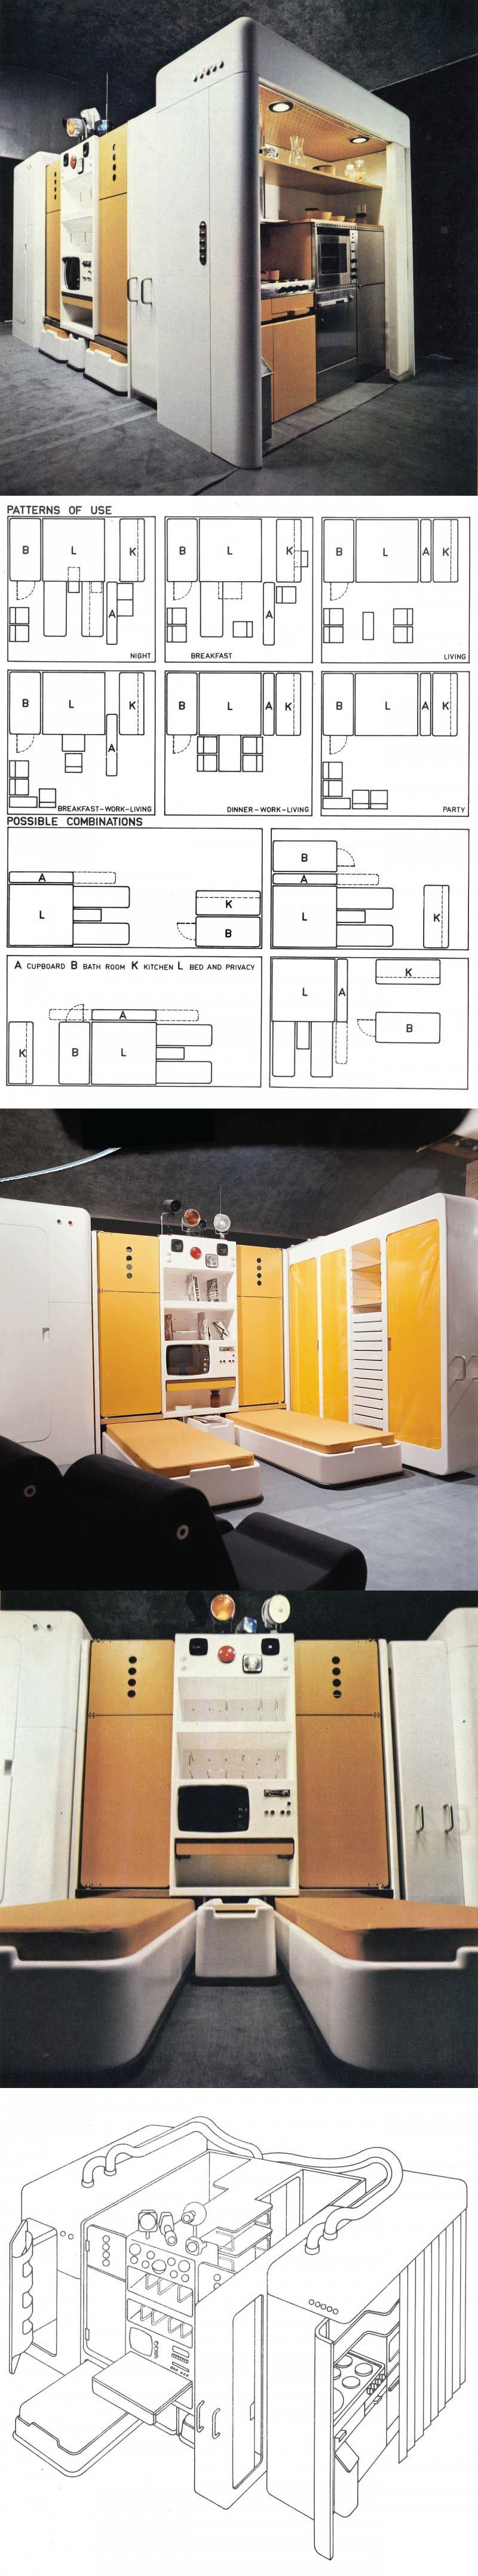 Total Furnishing Unit 1971 Joe Colombo Preppers Micro Living In Small Spaces In Tiny